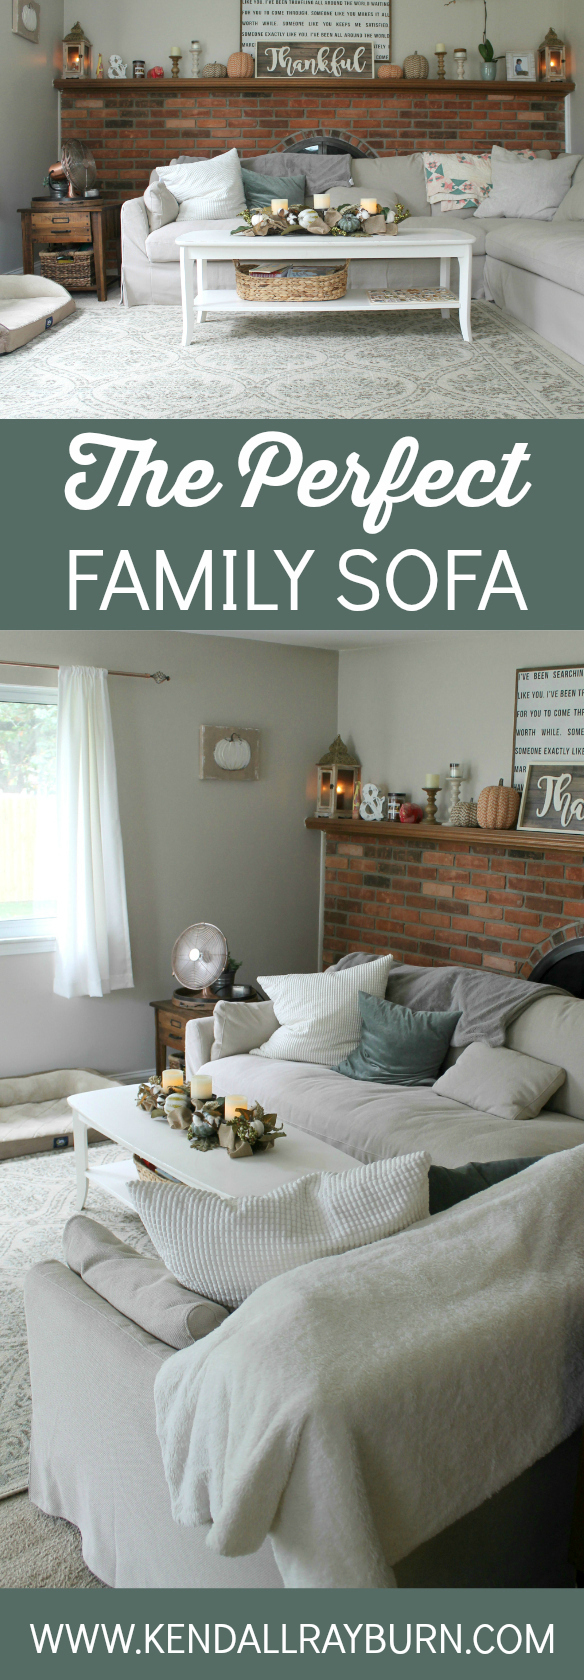 The Perfect Family Sofa